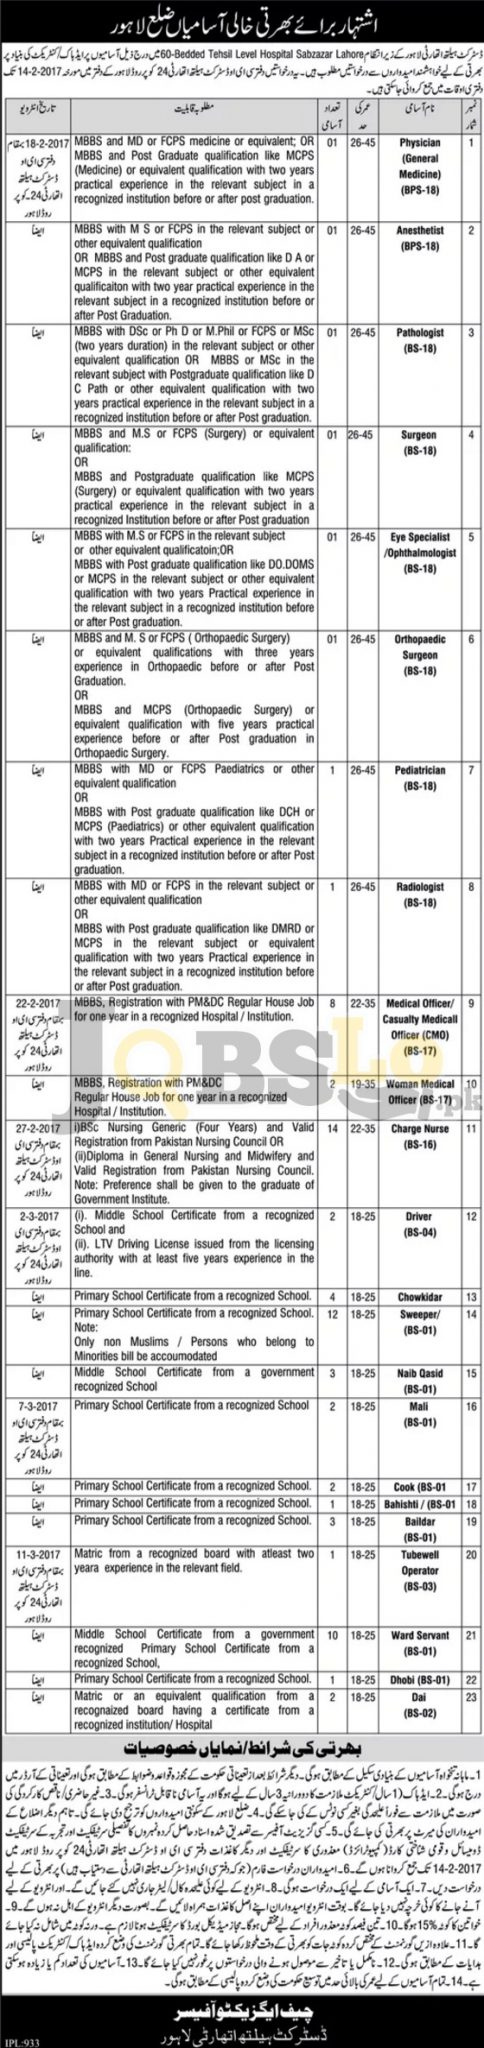 Health Department Punjab Lahore Jobs 2017 Current Openings Add